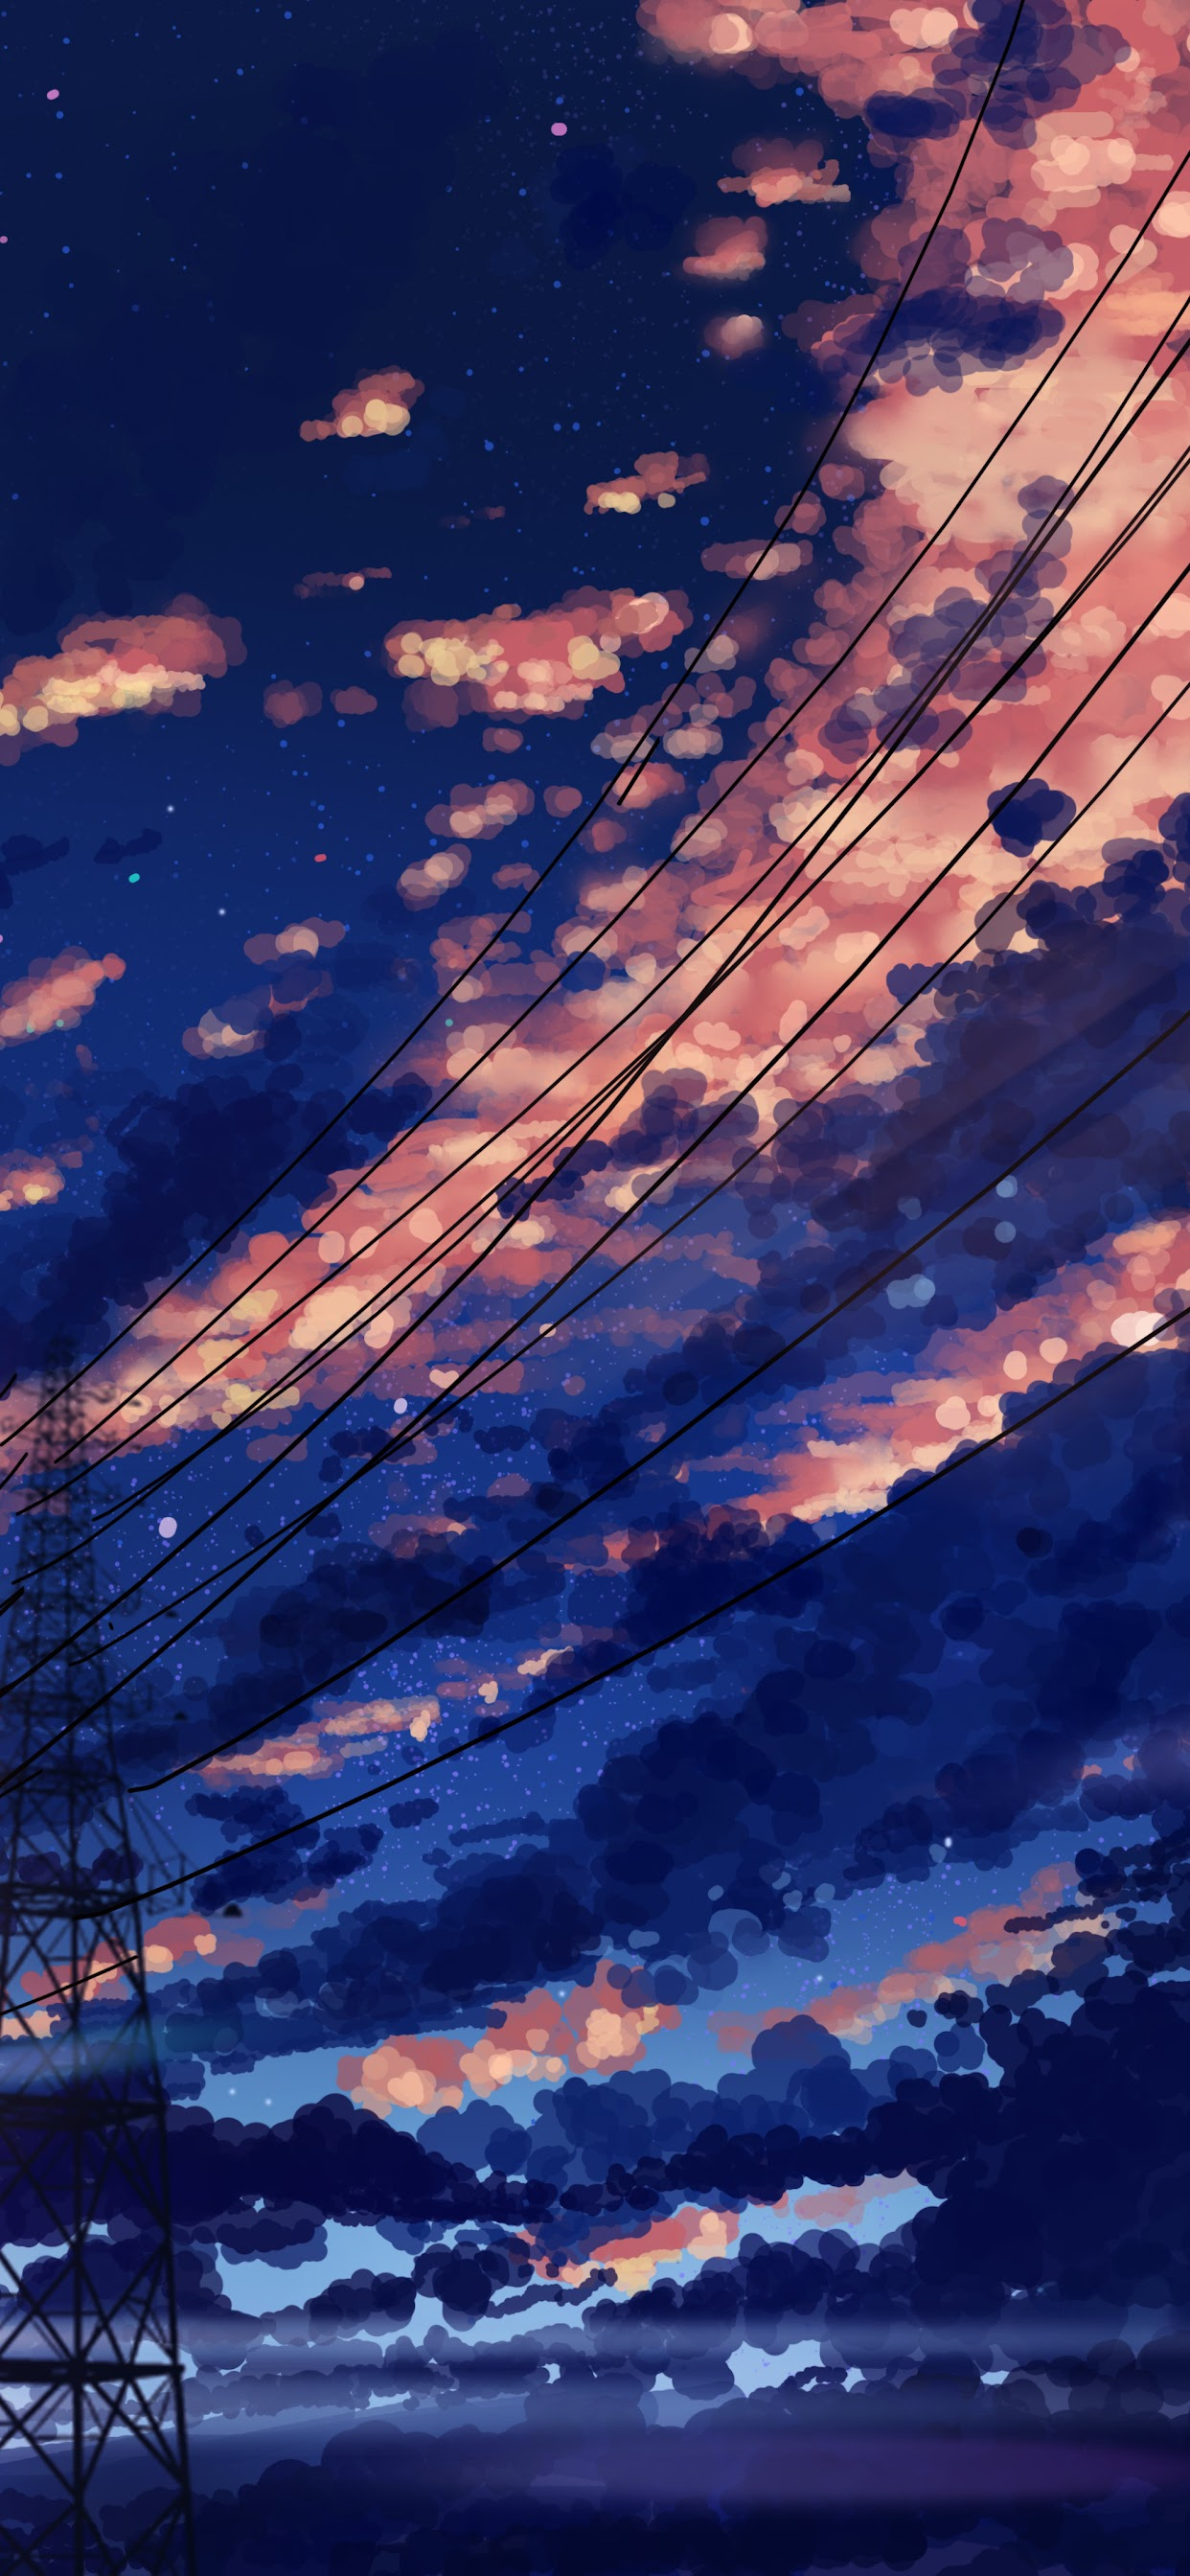 Sky Clouds Sunrise Scenery Anime 8k Wallpaper 142